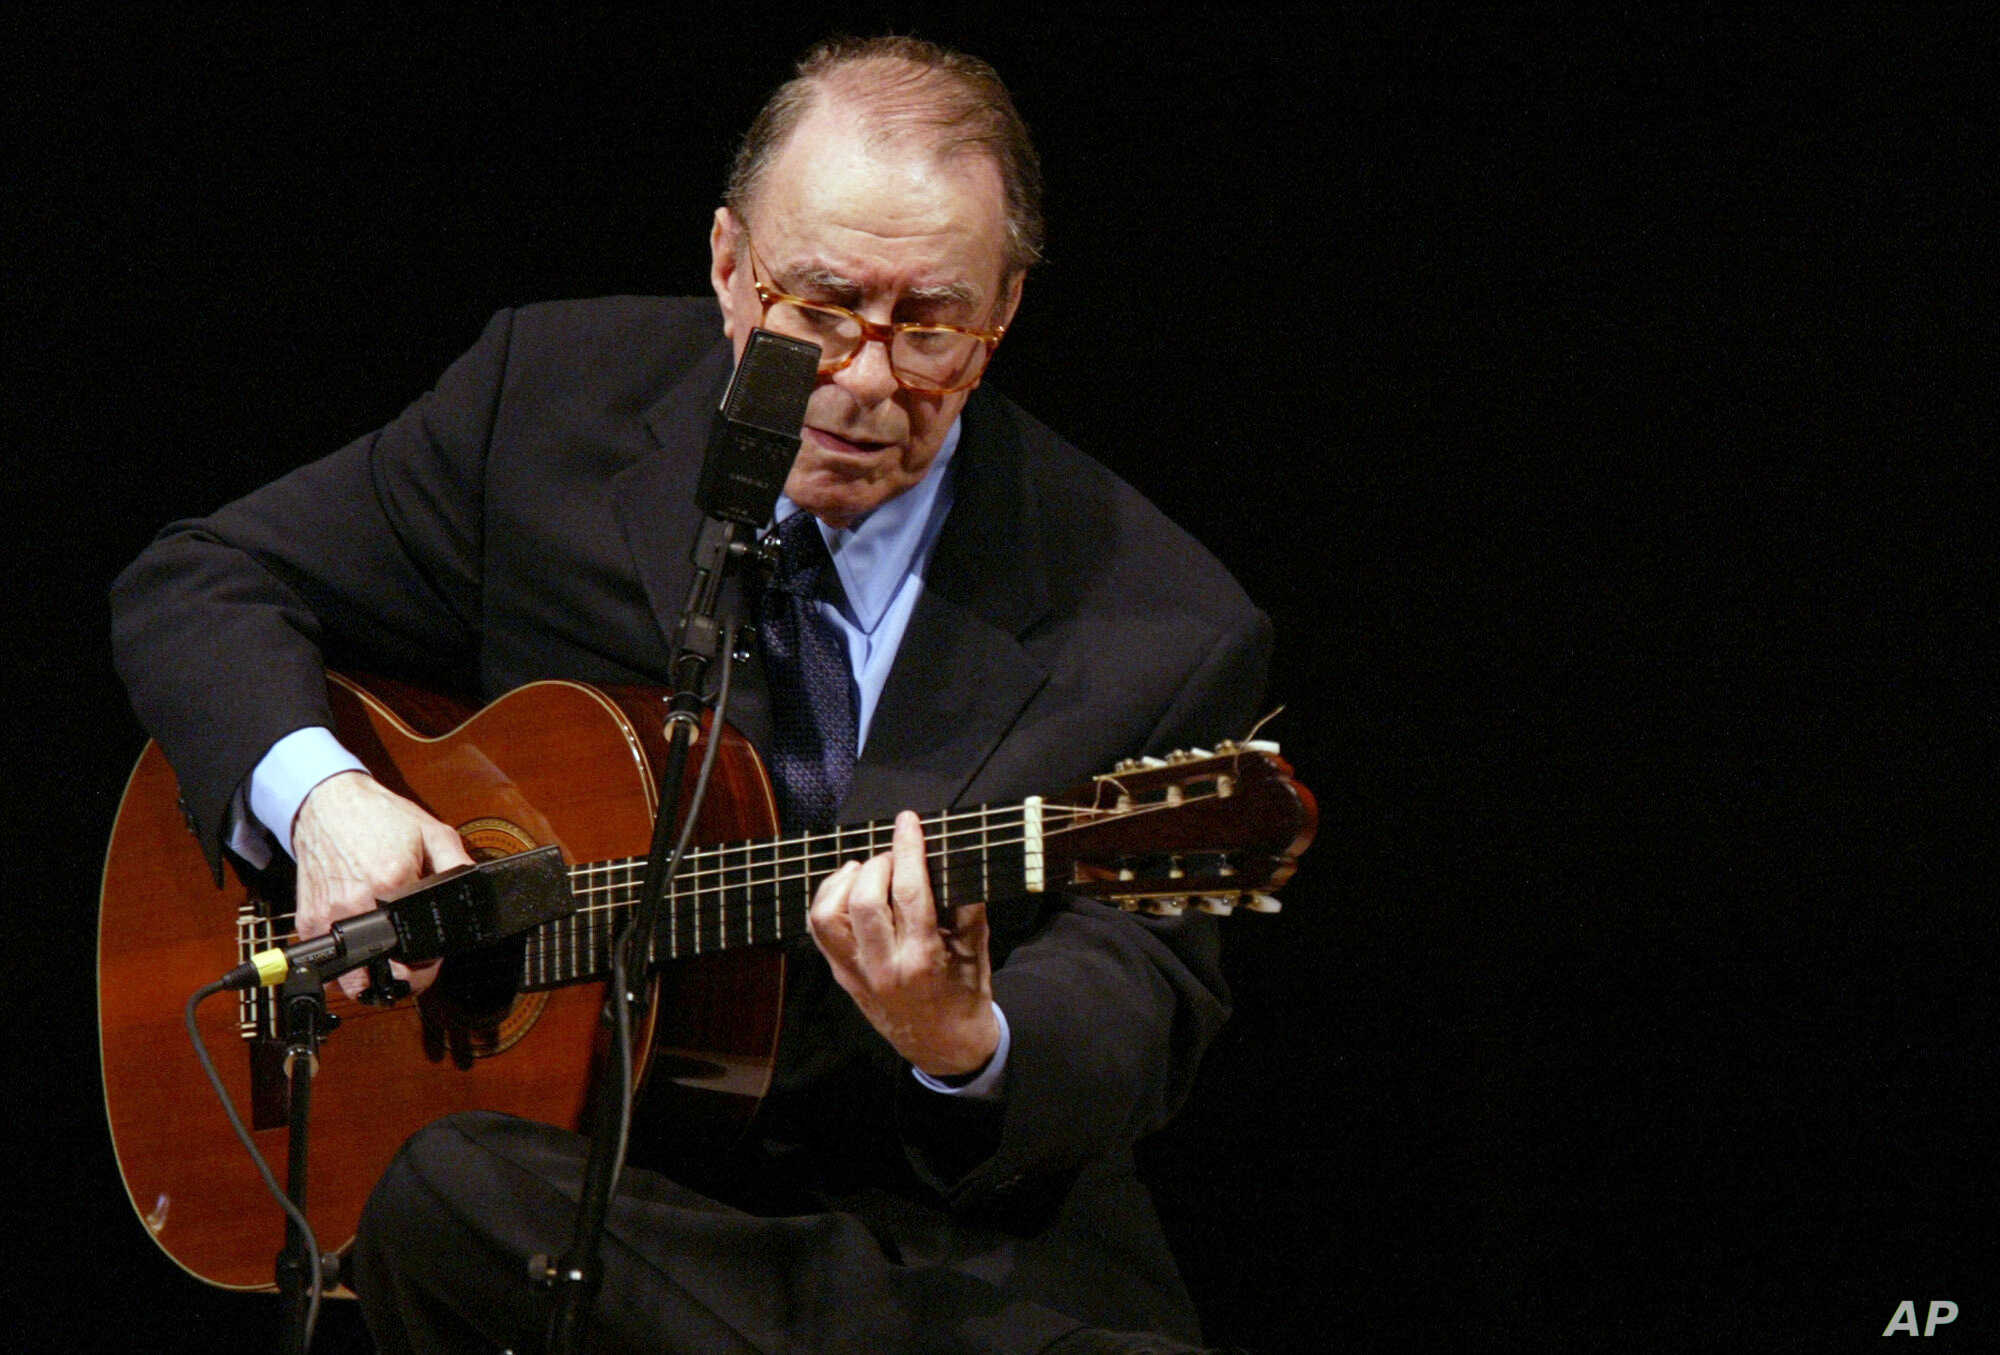 FILE - In this June 18, 2004 file photo, Brazilian composer Joao Gilberto performs at Carnegie Hall, in New York. The Brazilian singer and composer, who is considered one of the fathers of the Bossa Nova genre, has died. His death was confirmed by…